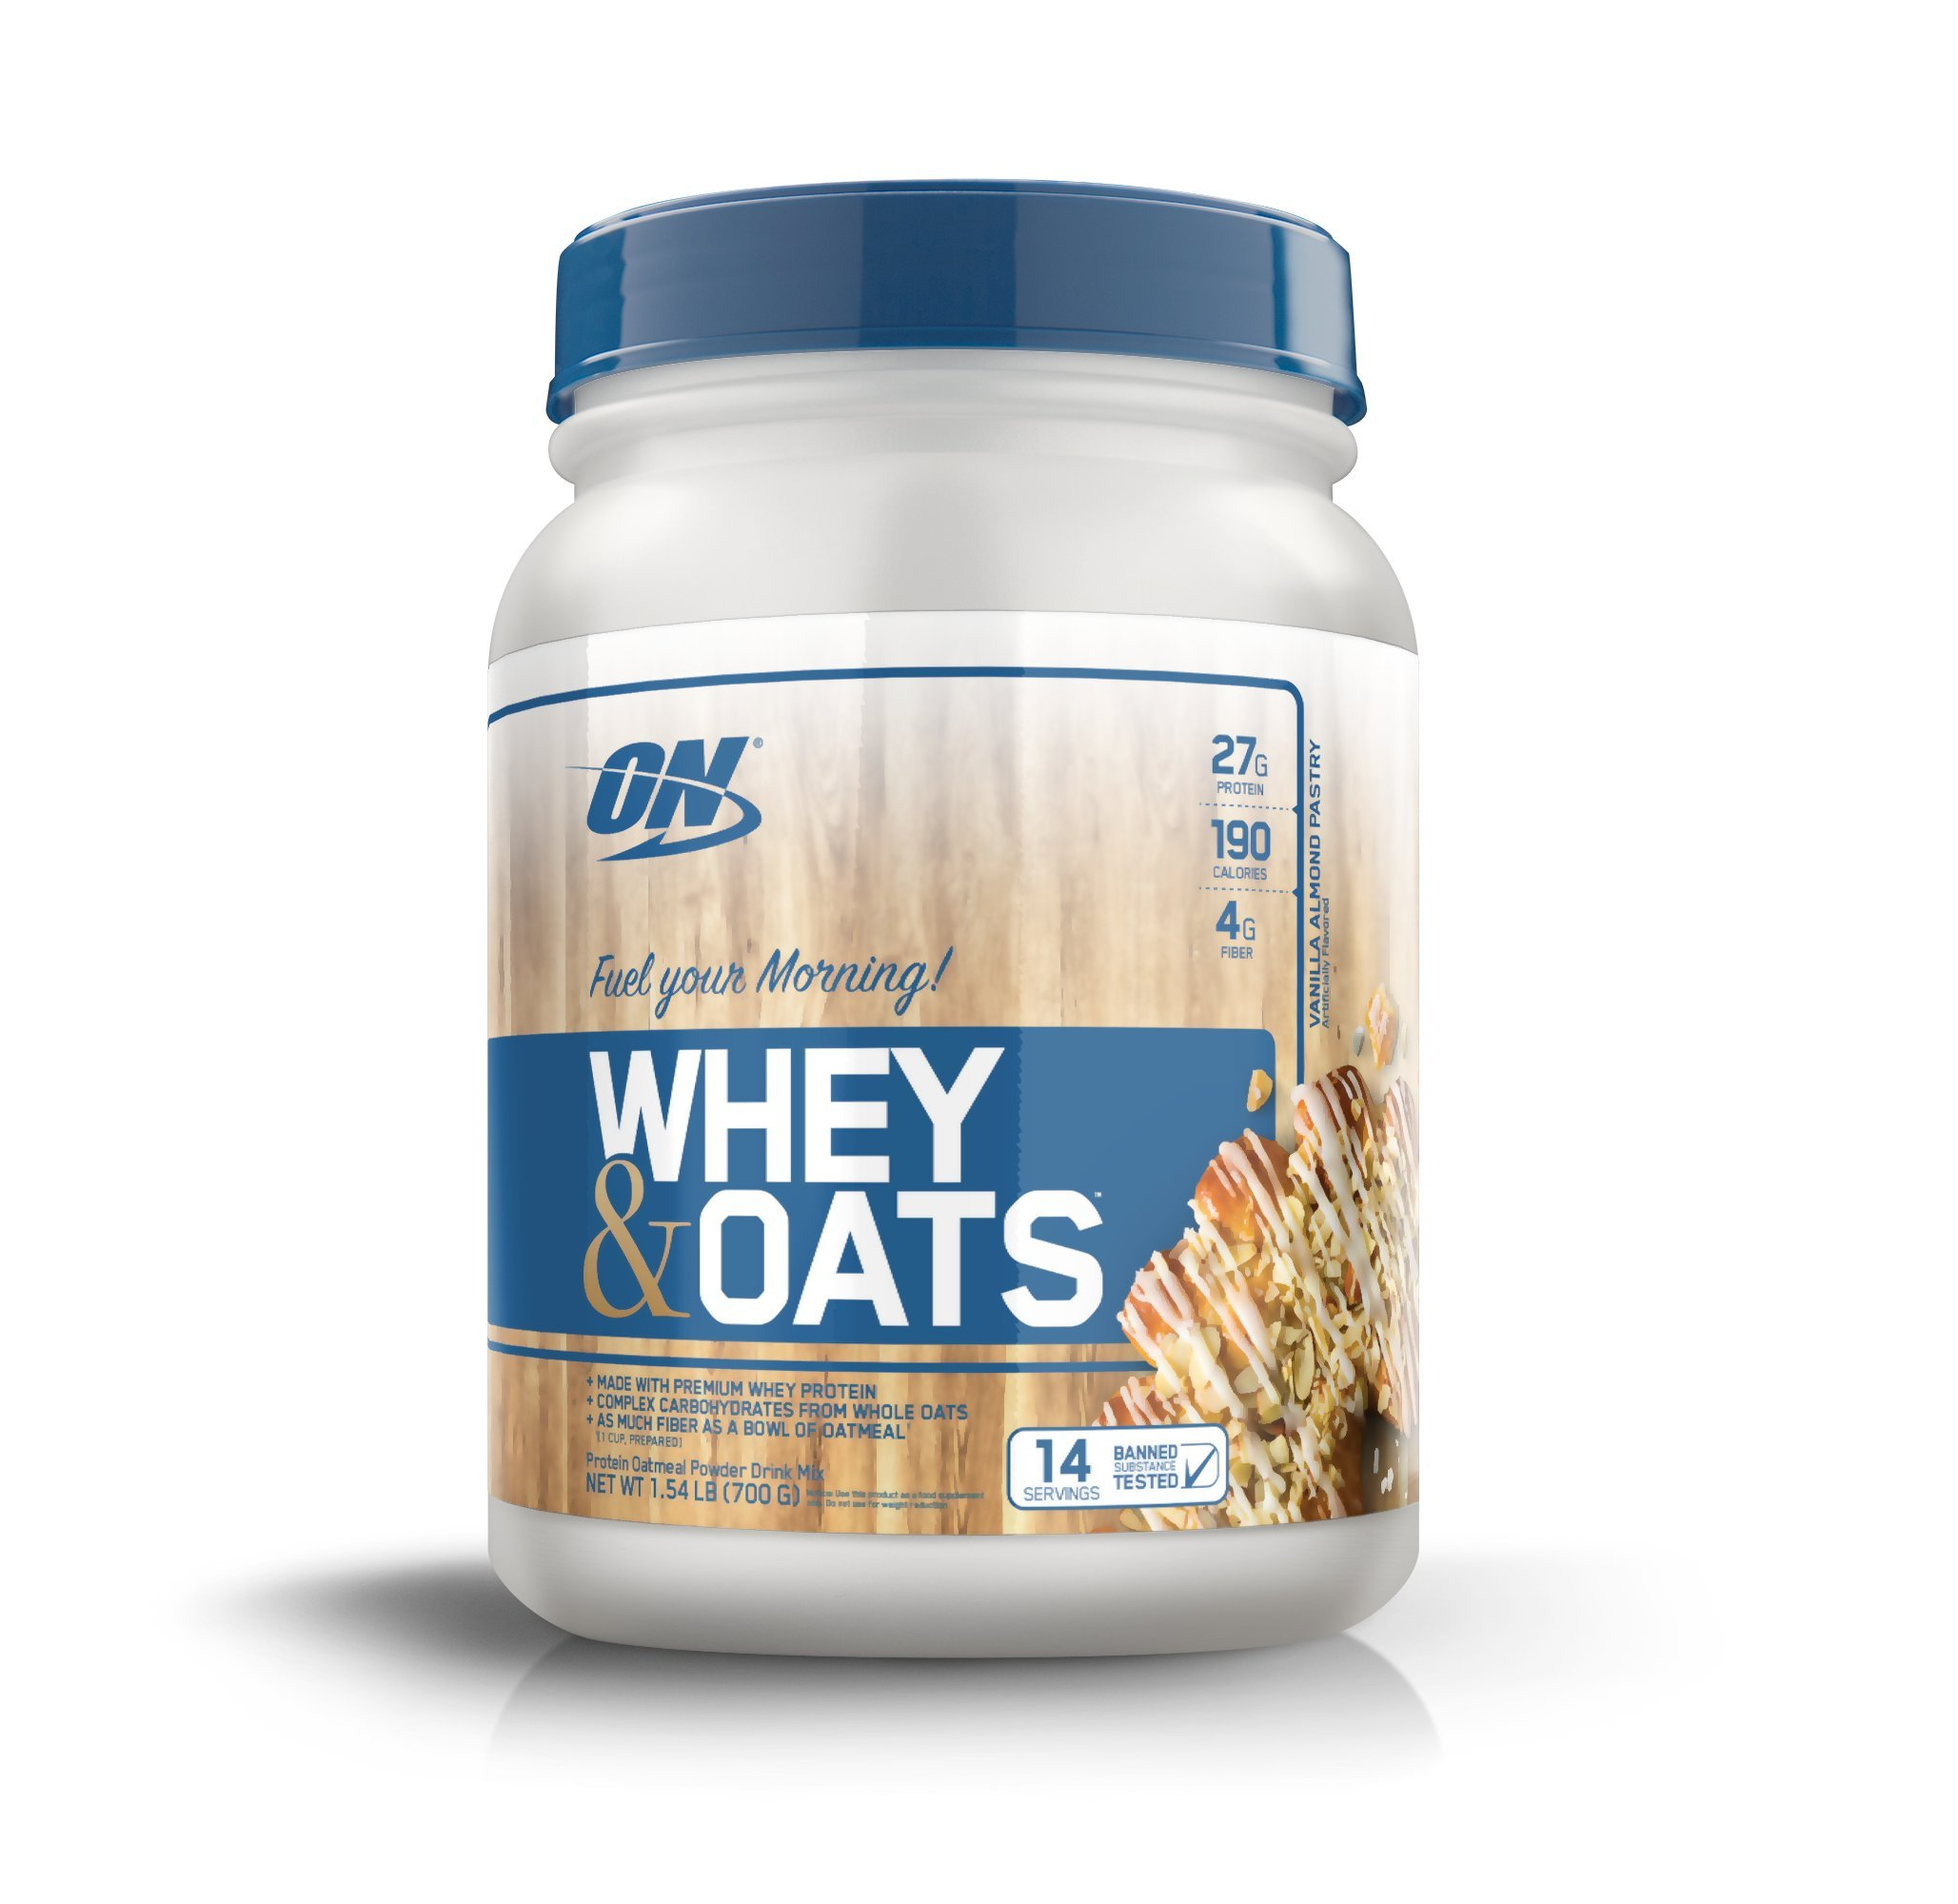 OPTIMUM NUTRITION Whey & Oats Protein Powder, Breakfast Or Anytime High Protein and High Fiber Shake, Vanilla Almond Pastry, 14 Servings by Optimum Nutrition